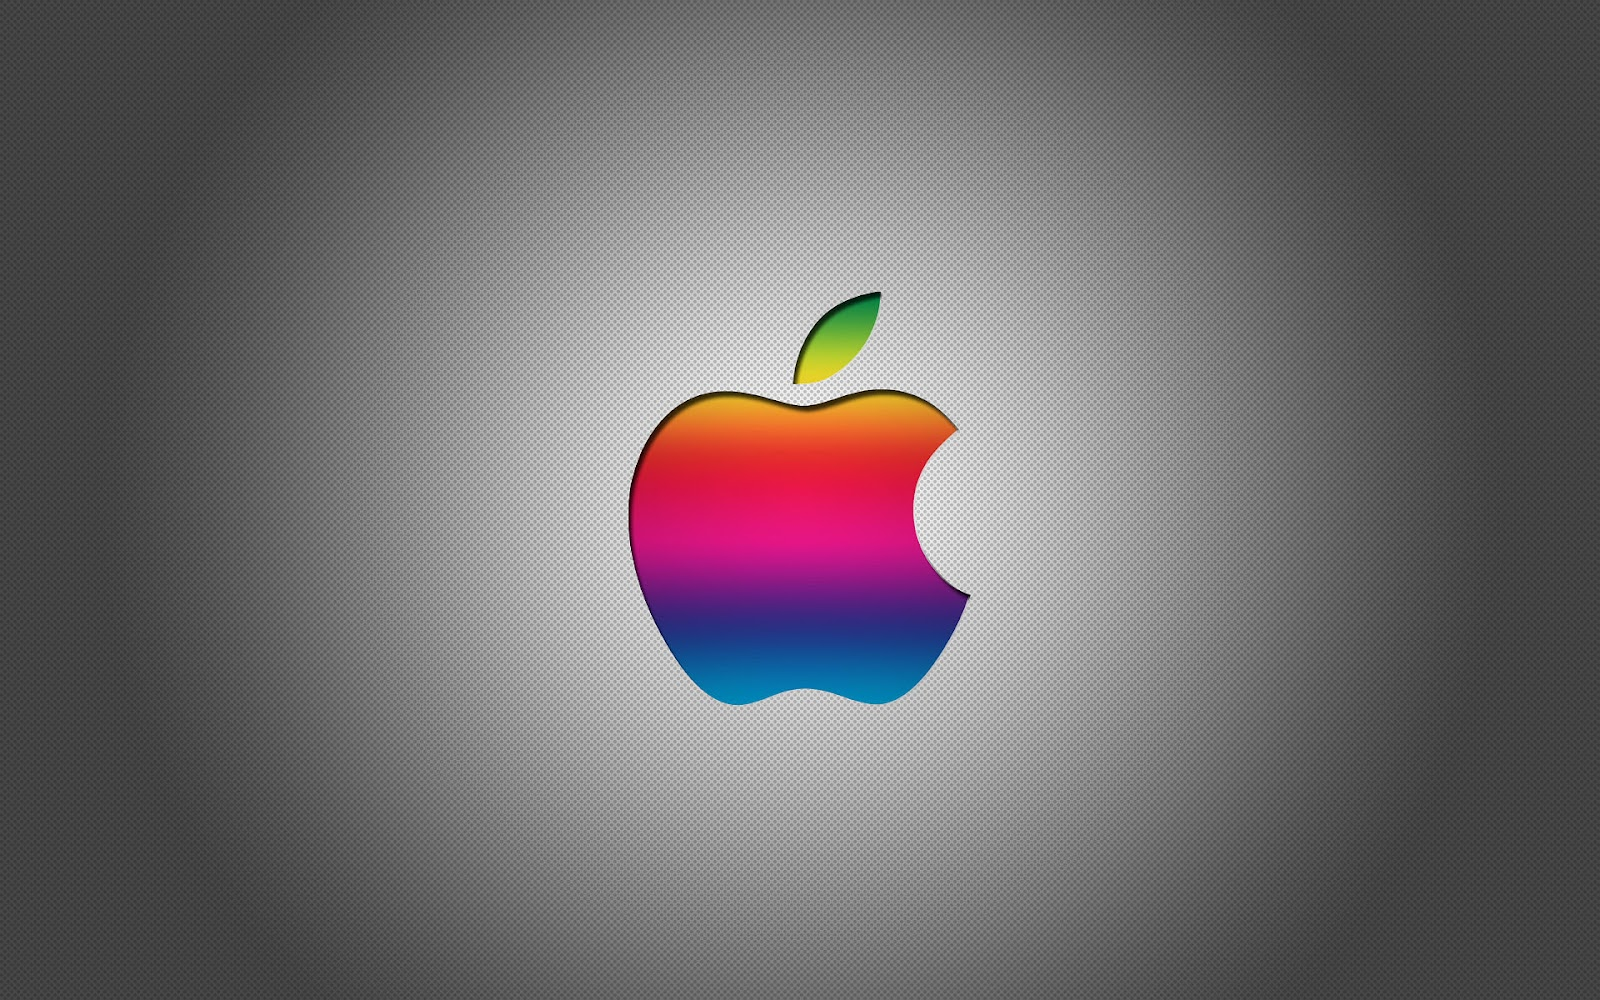 apple wallpaper cu - photo #38